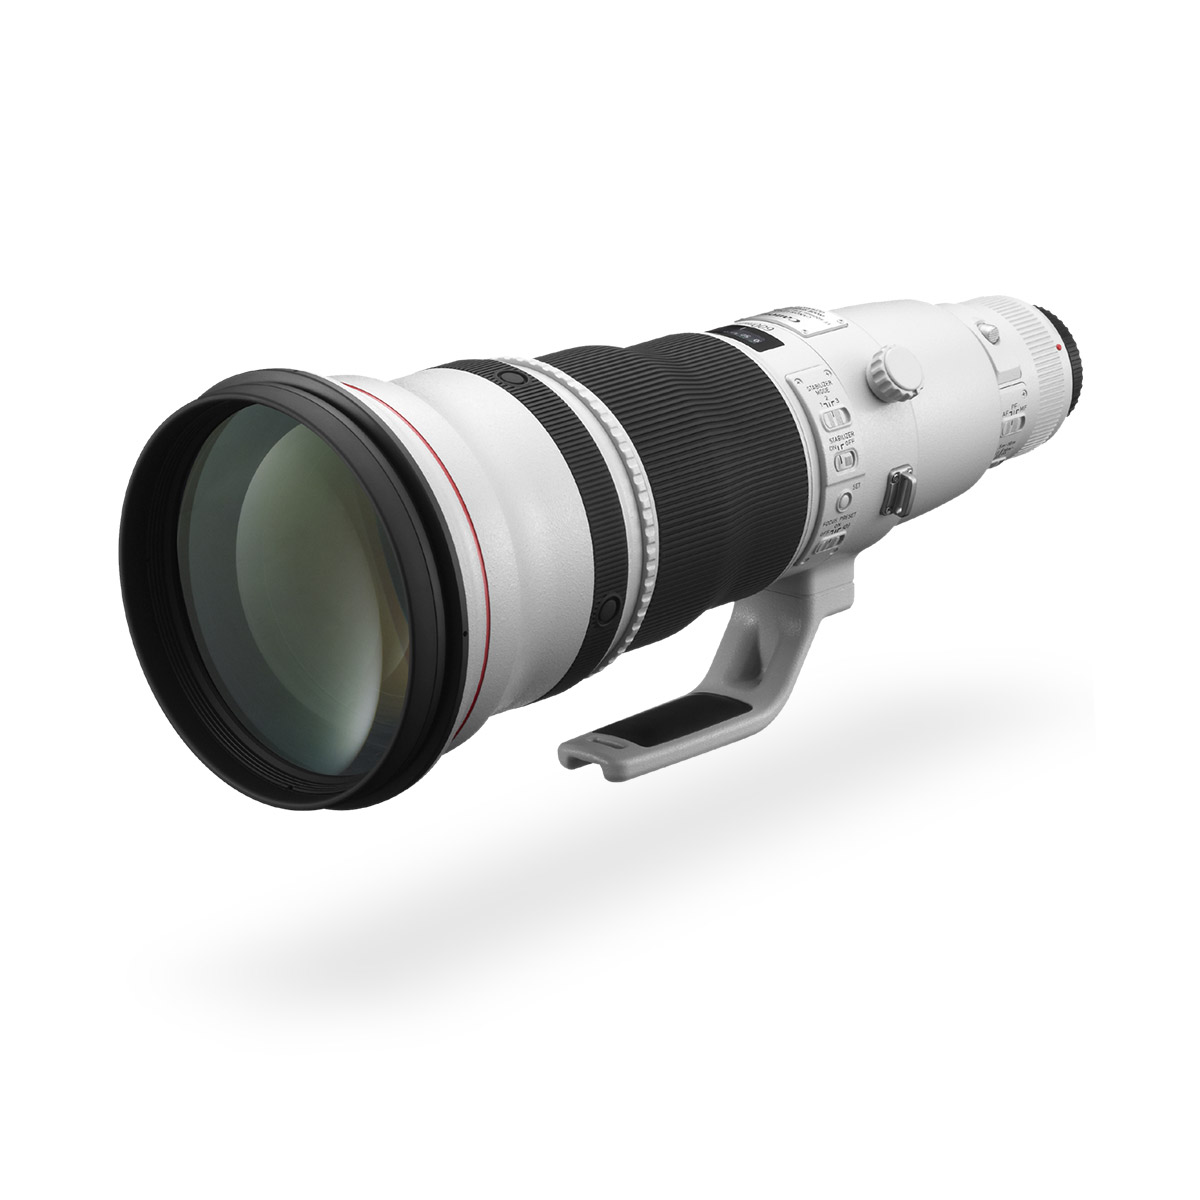 EF 600mm f/4L IS II USM lens